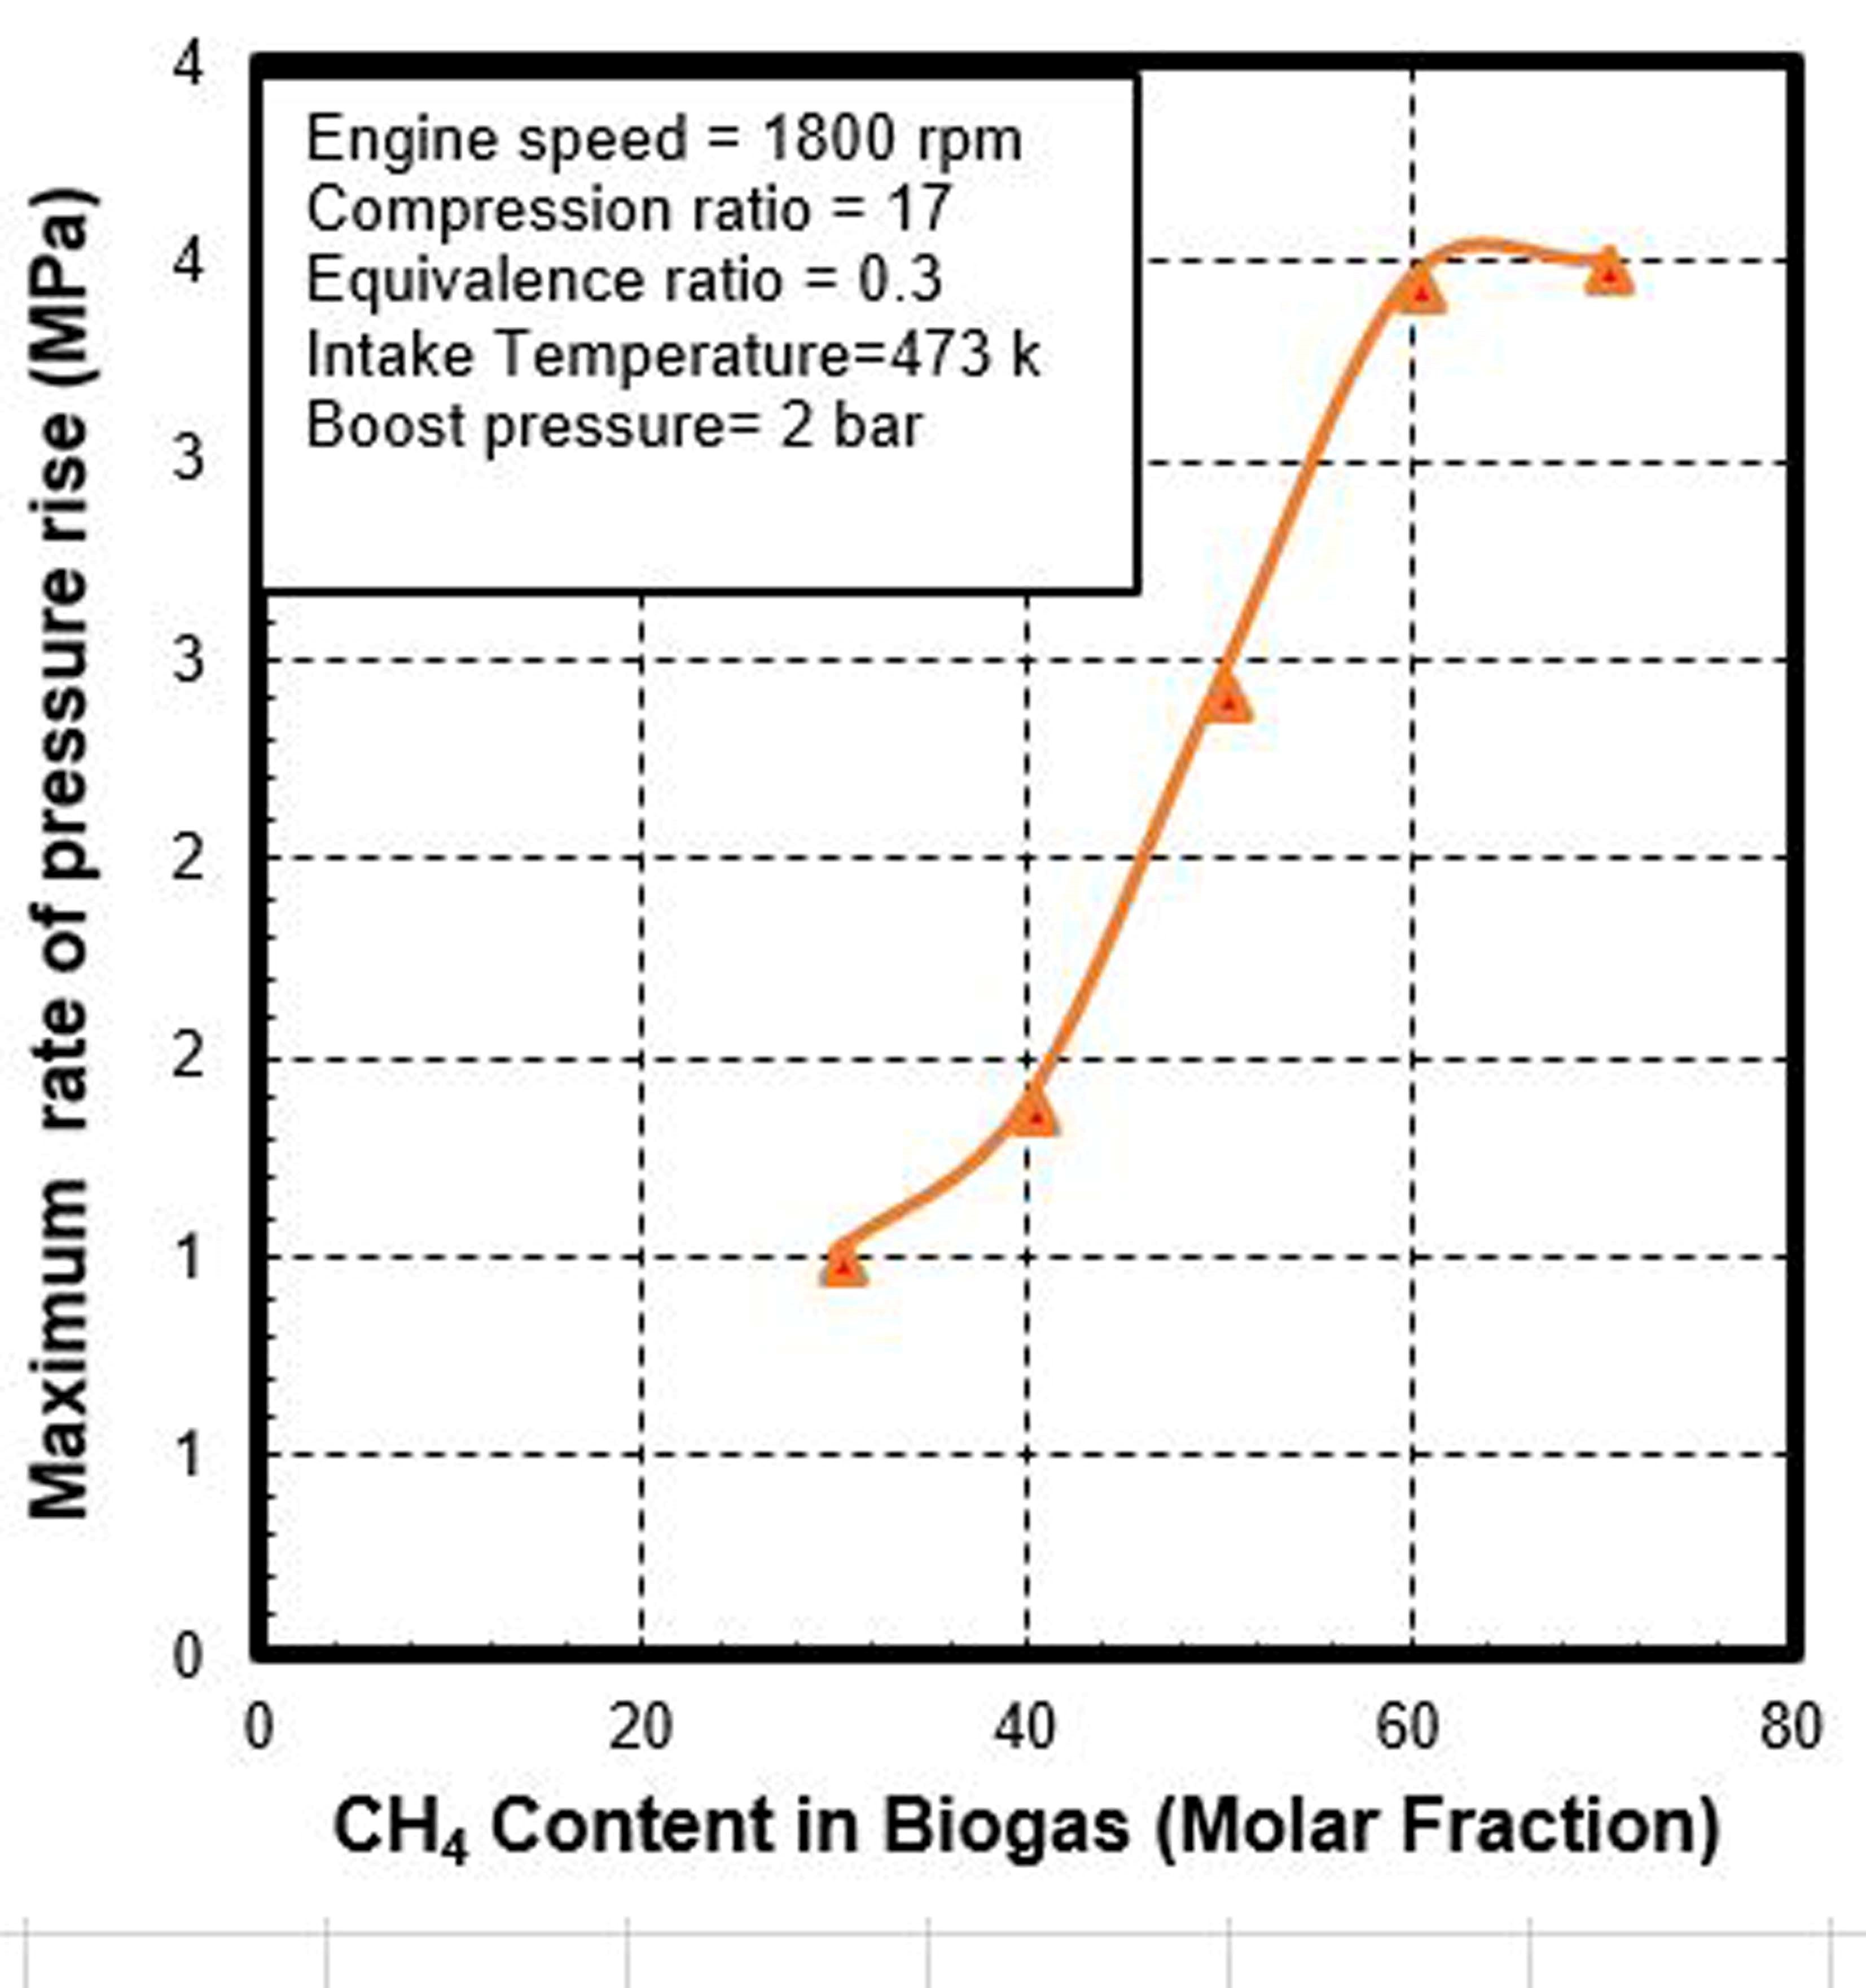 Numerical Investigation Of Biogas Fuelled Hcci Engine Projects Heat Loss Diagram Higher Equivalence Ratios Due To The Increase In Wall Temperature And Decrease Charge During Intake Compression Stroke